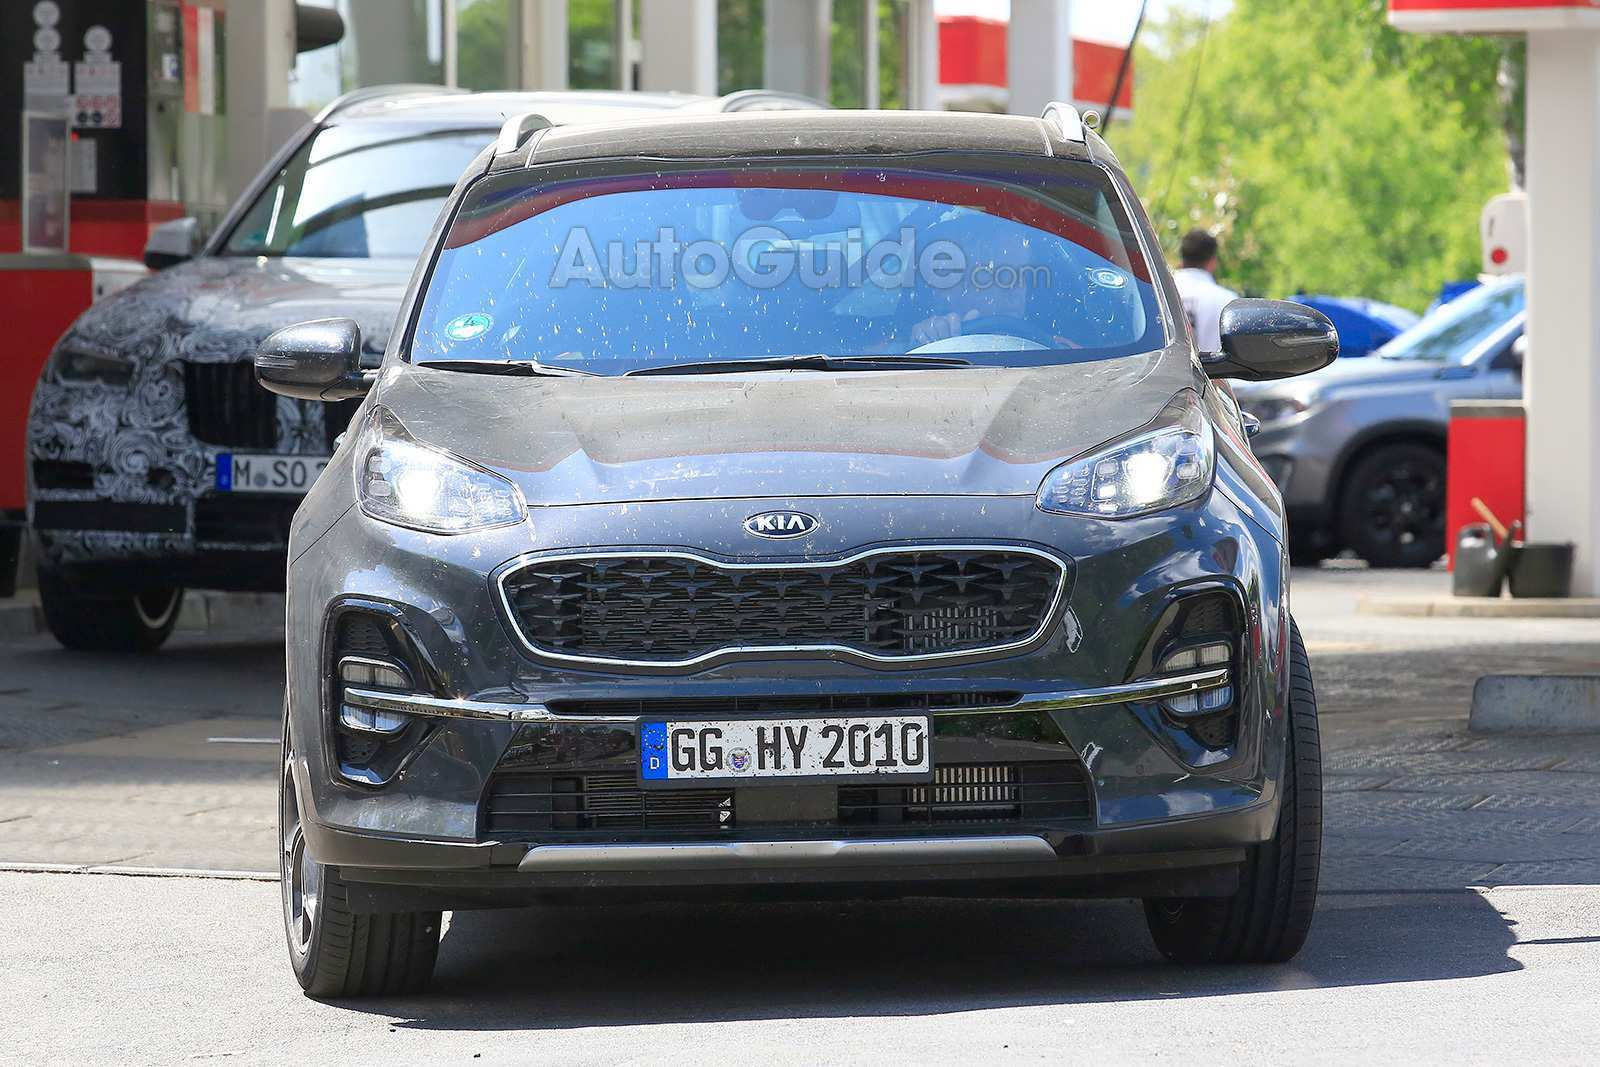 31 New Kia News 2019 Specs for Kia News 2019